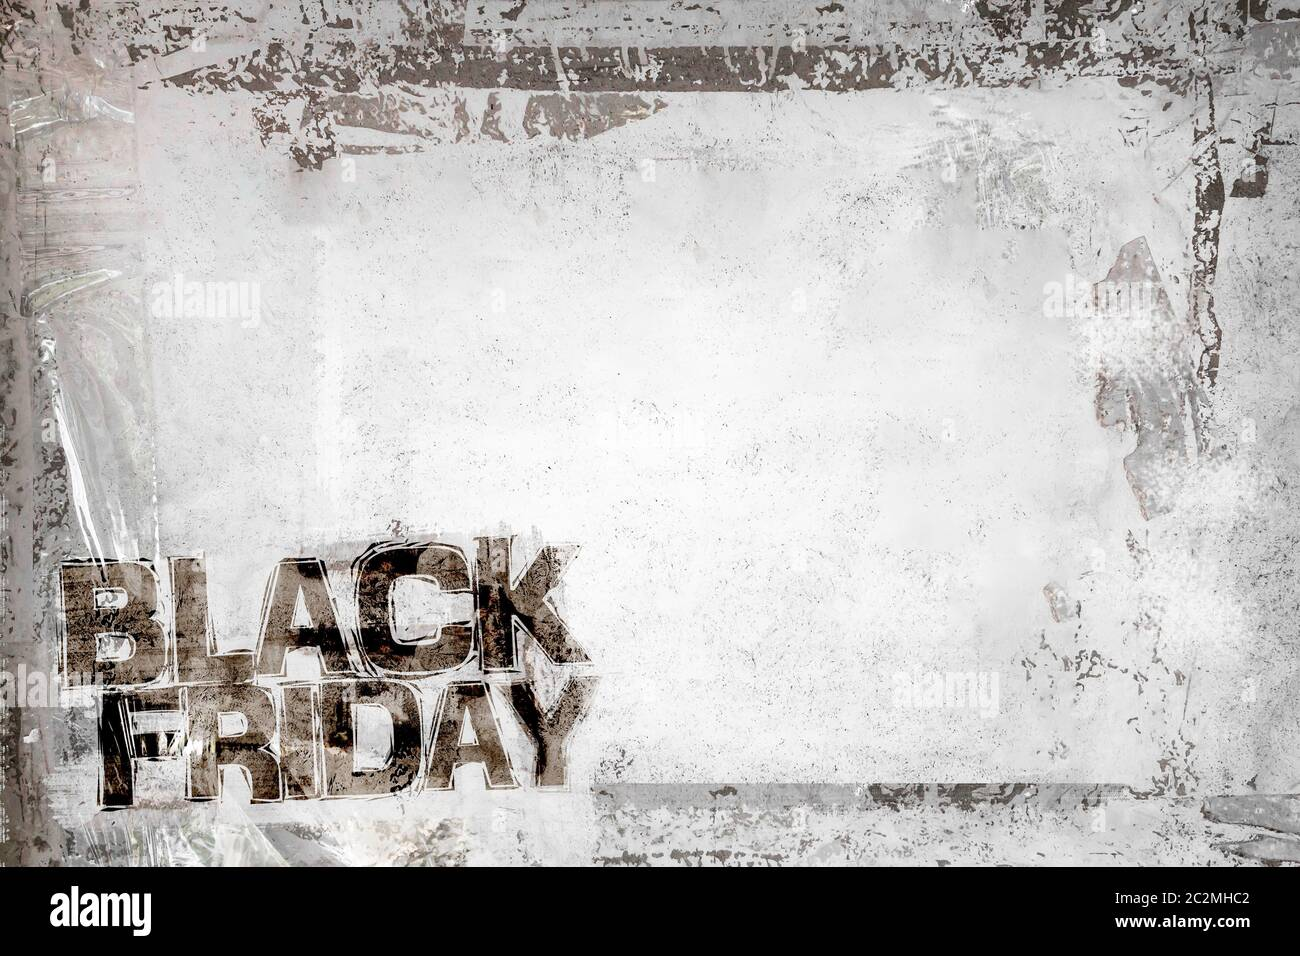 Black Friday Grunge Background With Grungy Frame And Remains Of Scotch Tape And Cellophane Fully Editable Dirty Artistic Design Element Box Frame Stock Photo Alamy